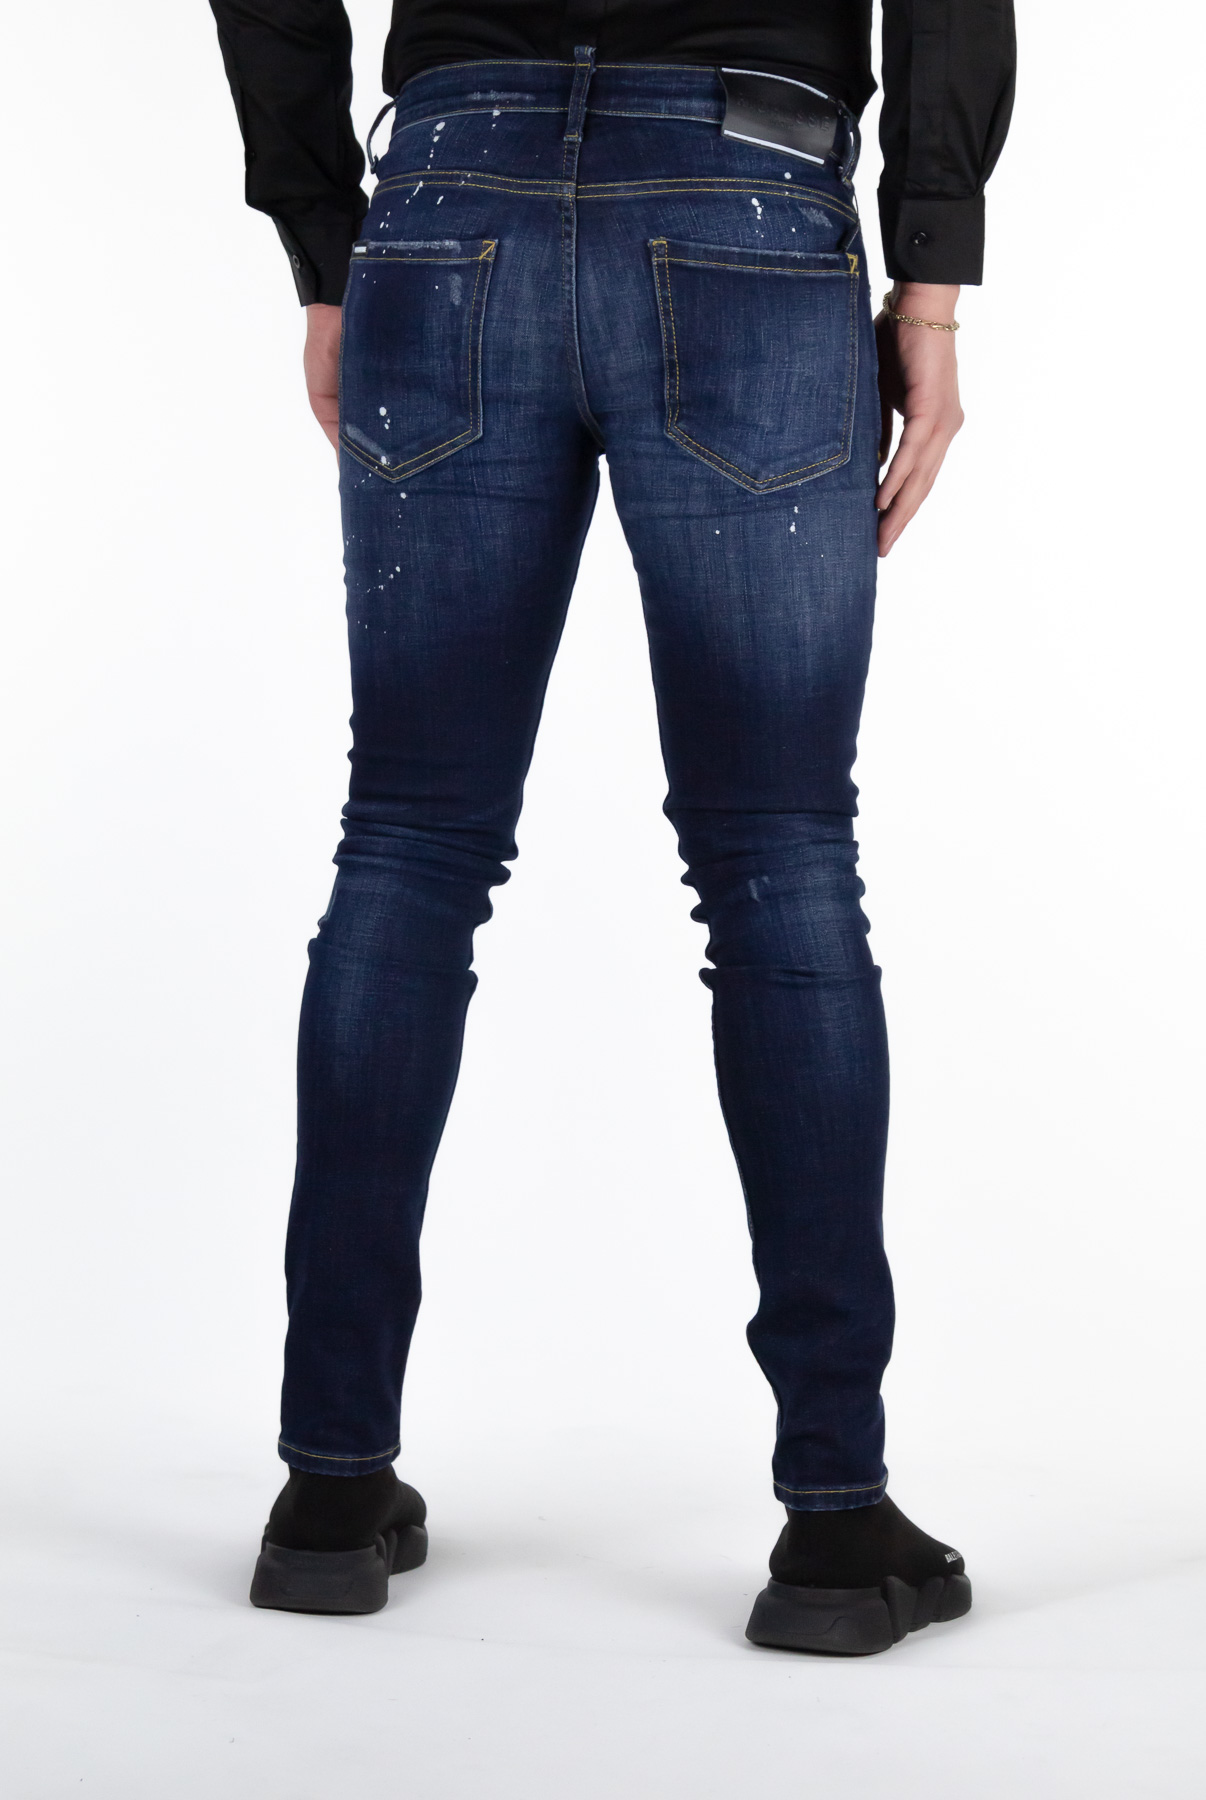 Richesse Florence Blue Jeans 2236-4